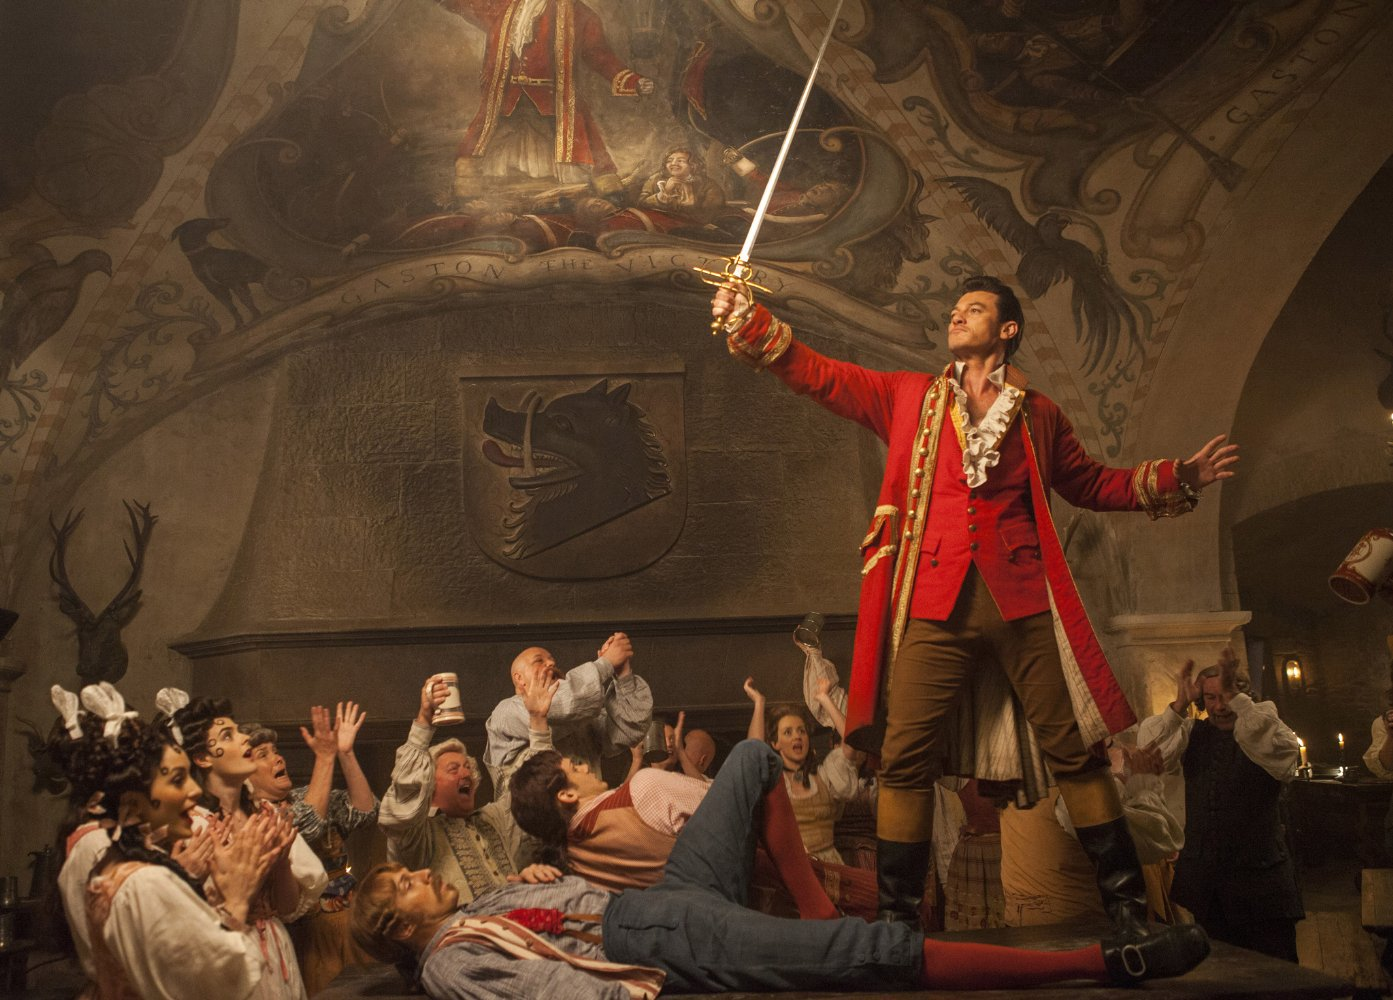 Beauty and the Beast, movie review by Pamela Price